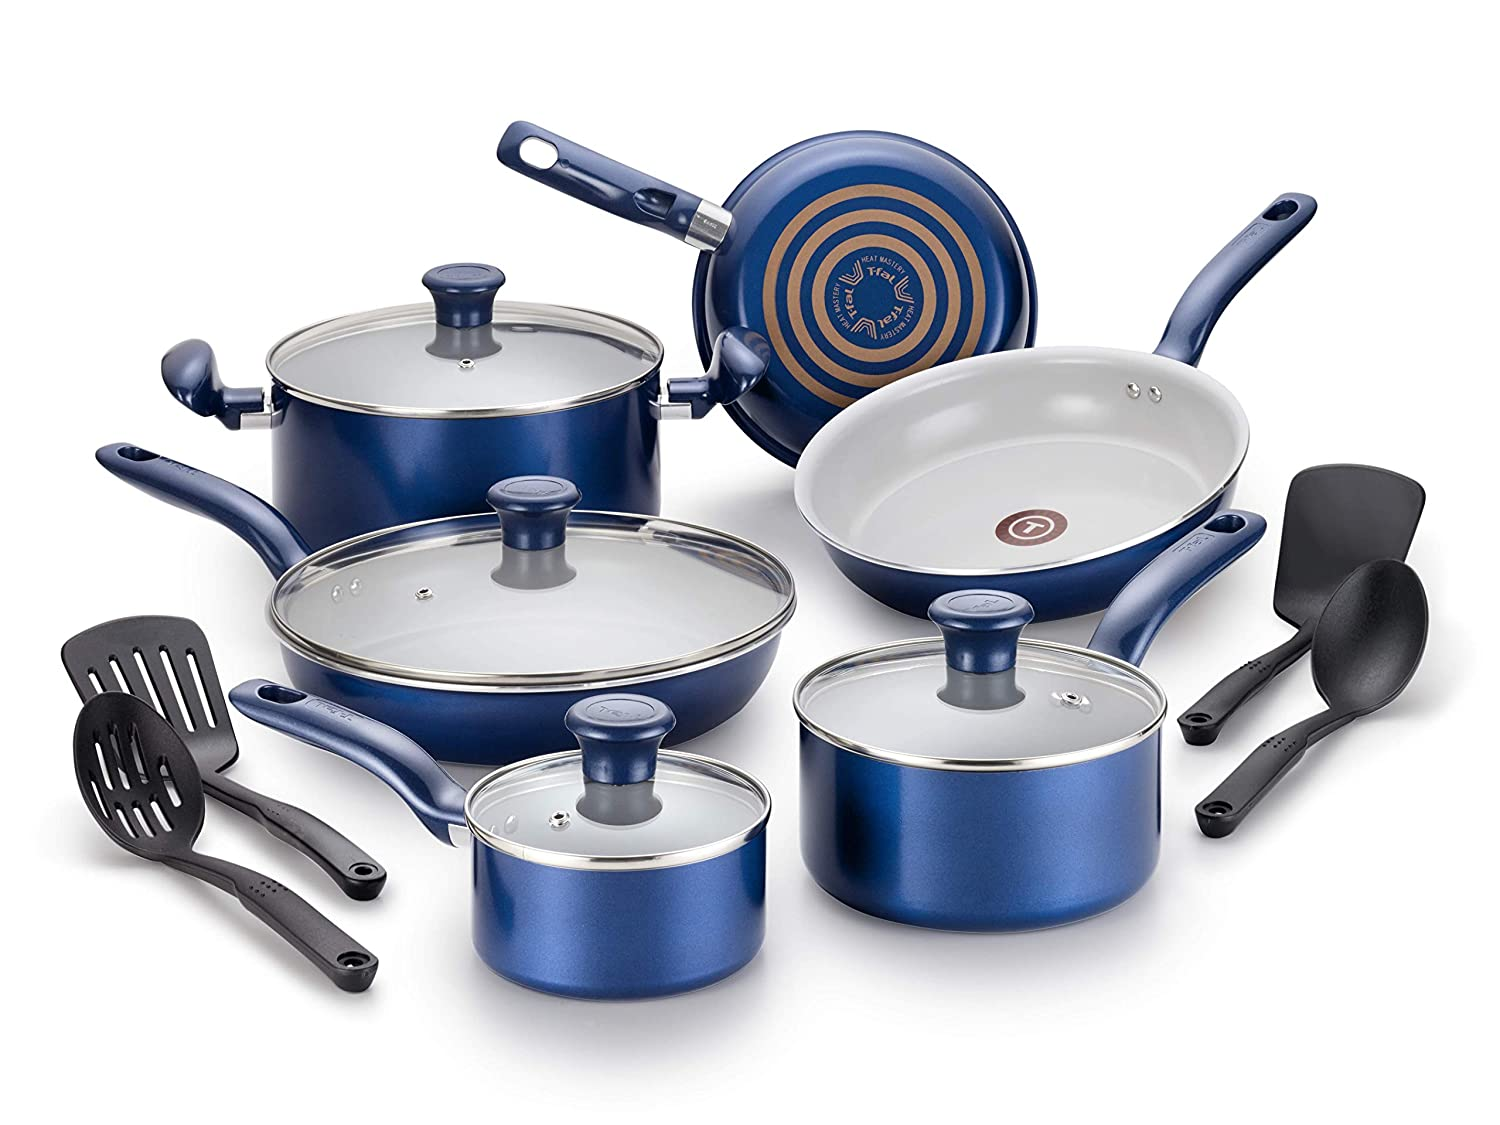 T-fal G918SE Initiatives Ceramic Thermo-Spot Heat Indicator Dishwasher Safe Oven Safe Cookware Set, 14-Piece, Blue